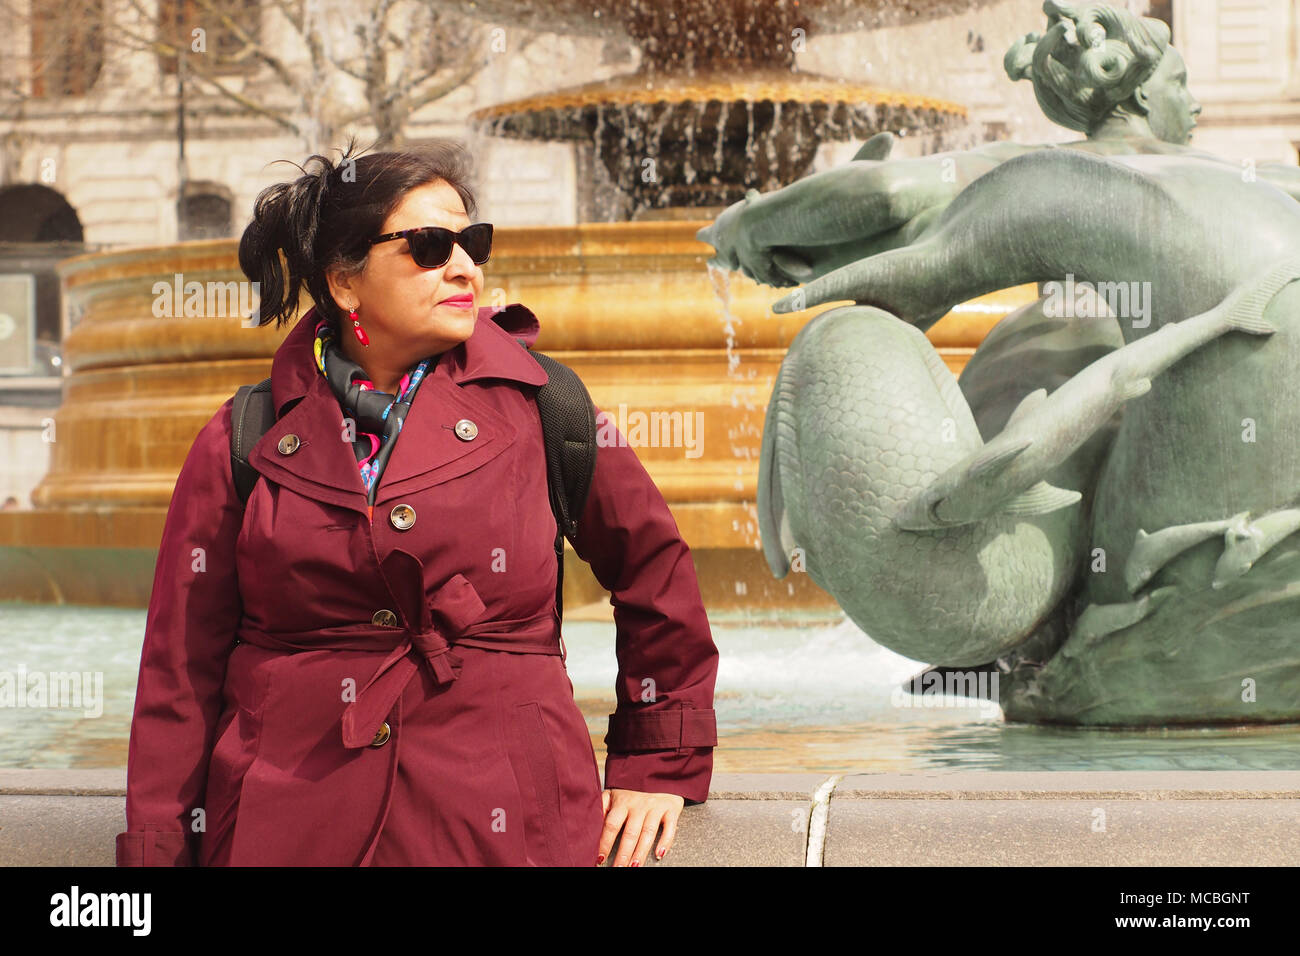 A woman sightseer in Trafalgar Square, London, taking in the sights on a bright winters day by the fountains - Stock Image